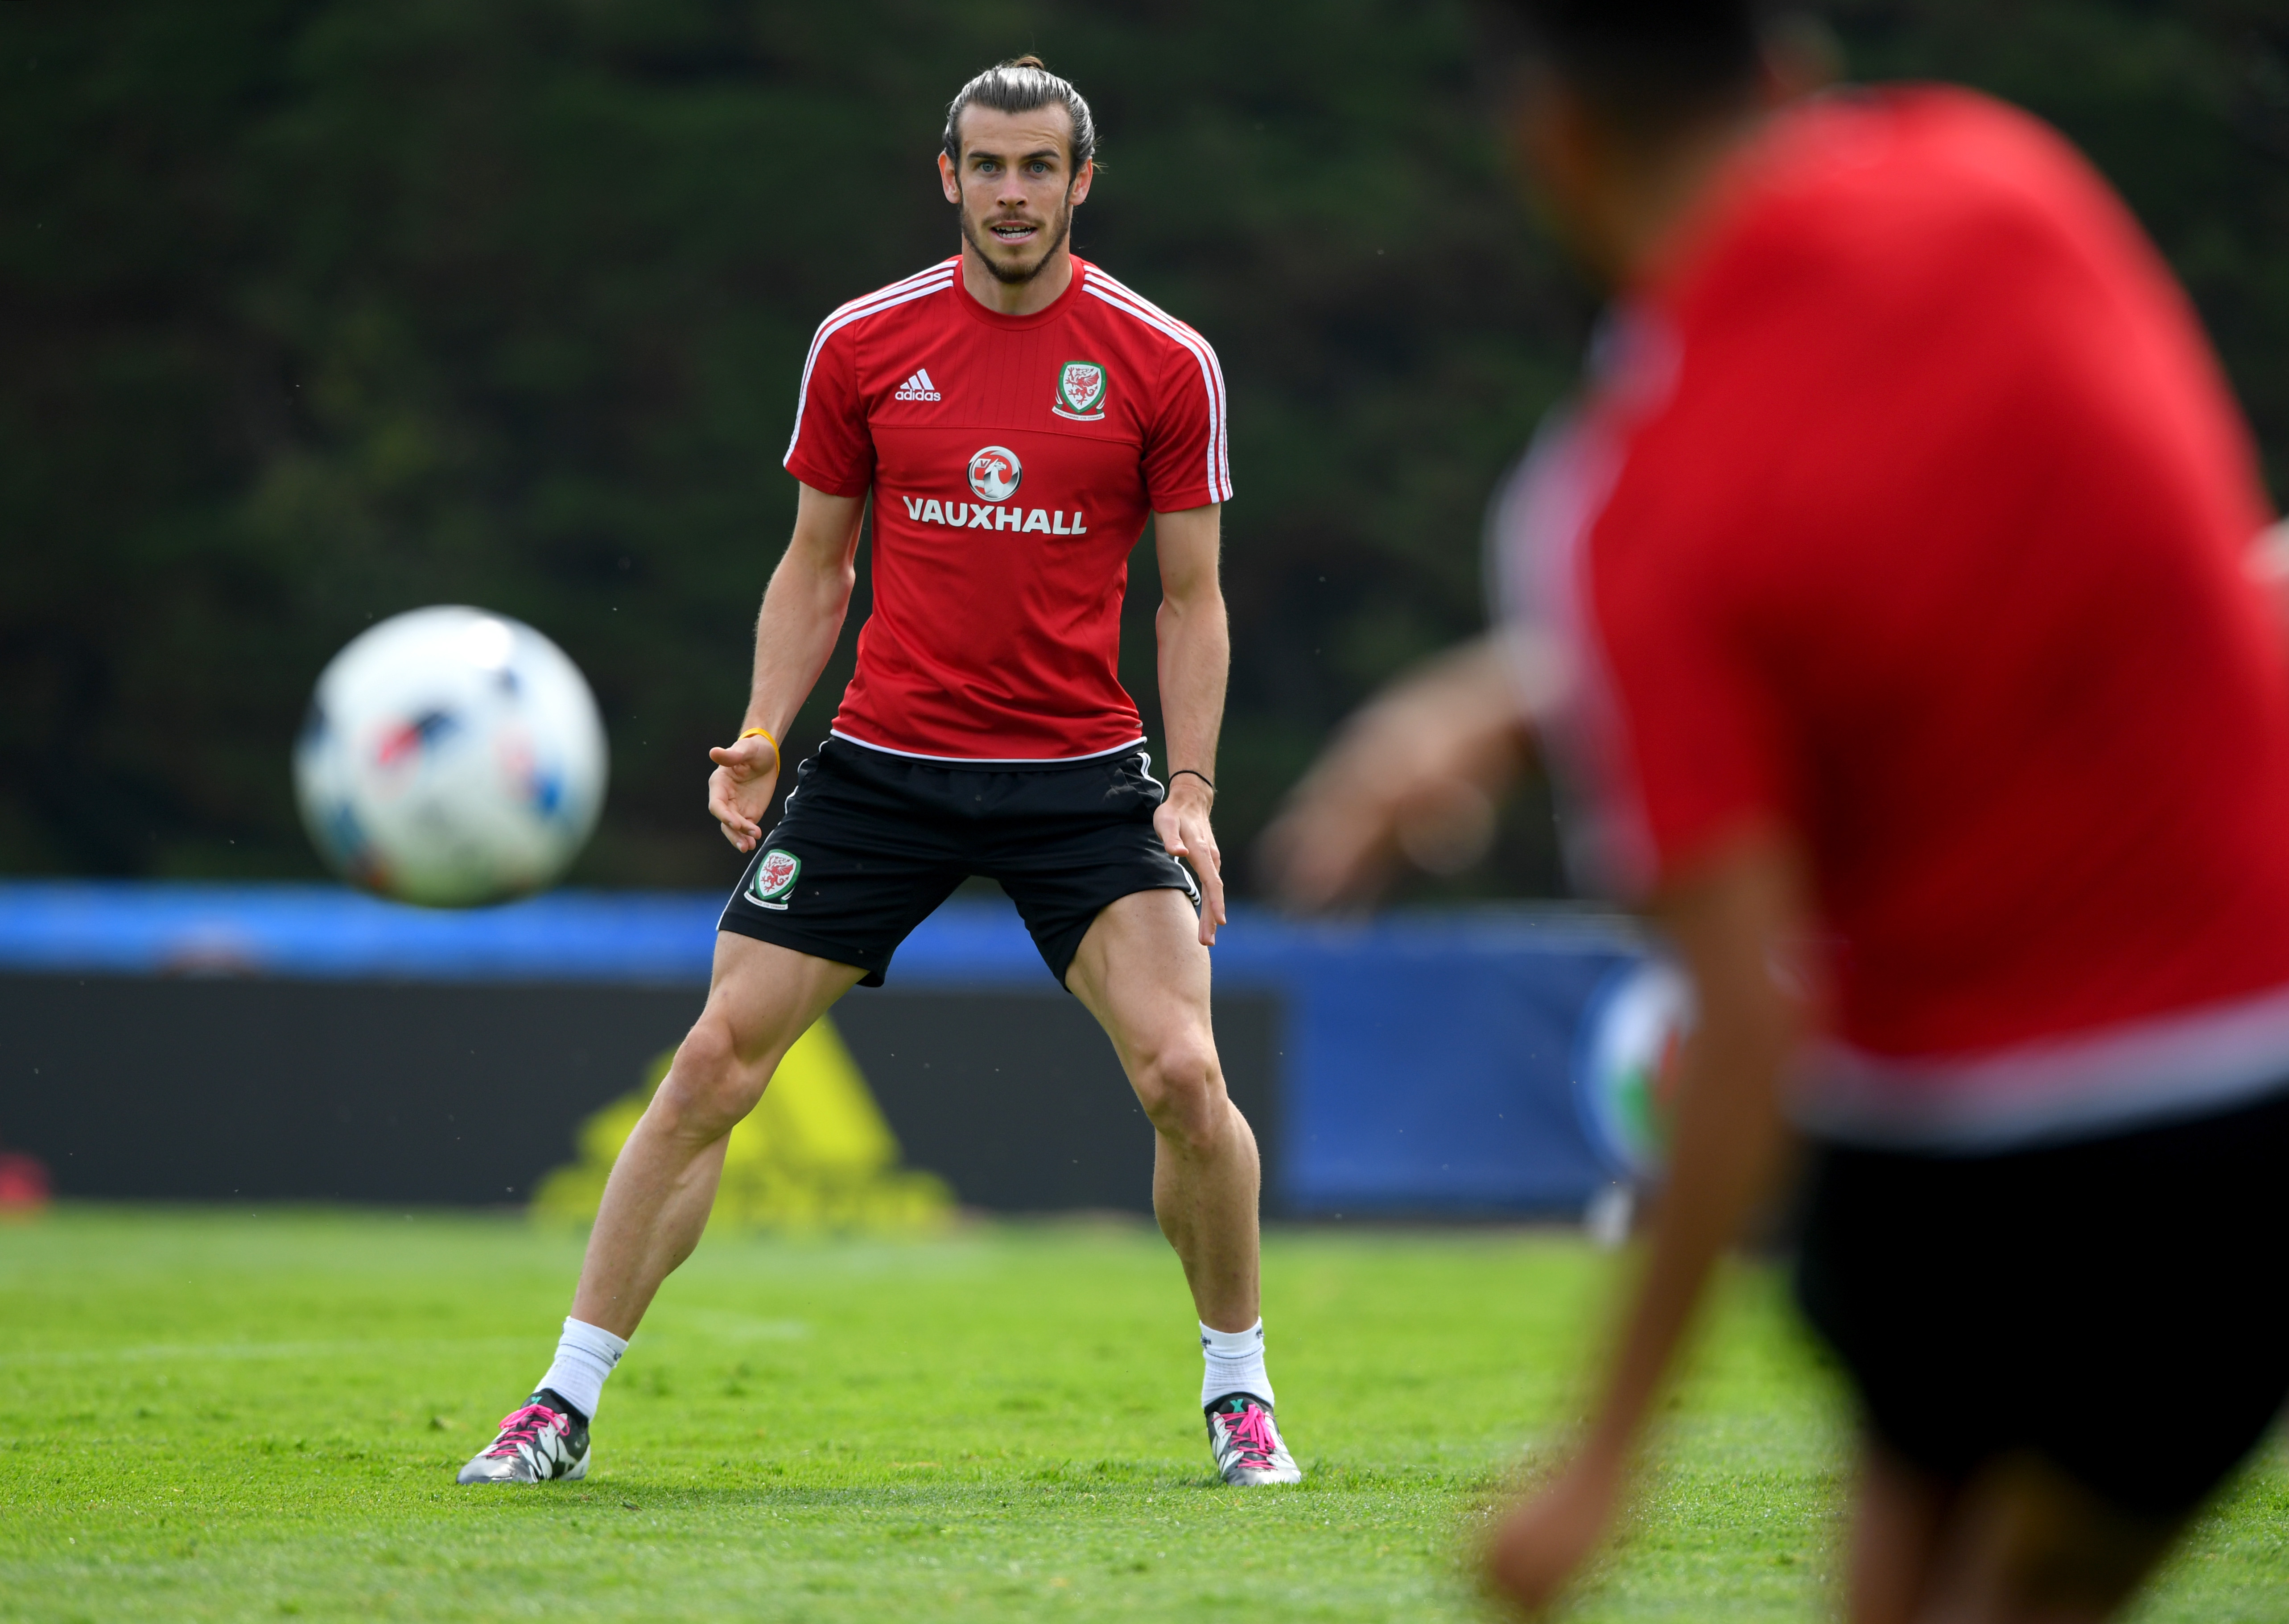 Wales player Gareth Bale in action during a Euro 2016 Wales training session on June 9, 2016 in Dinard, France.